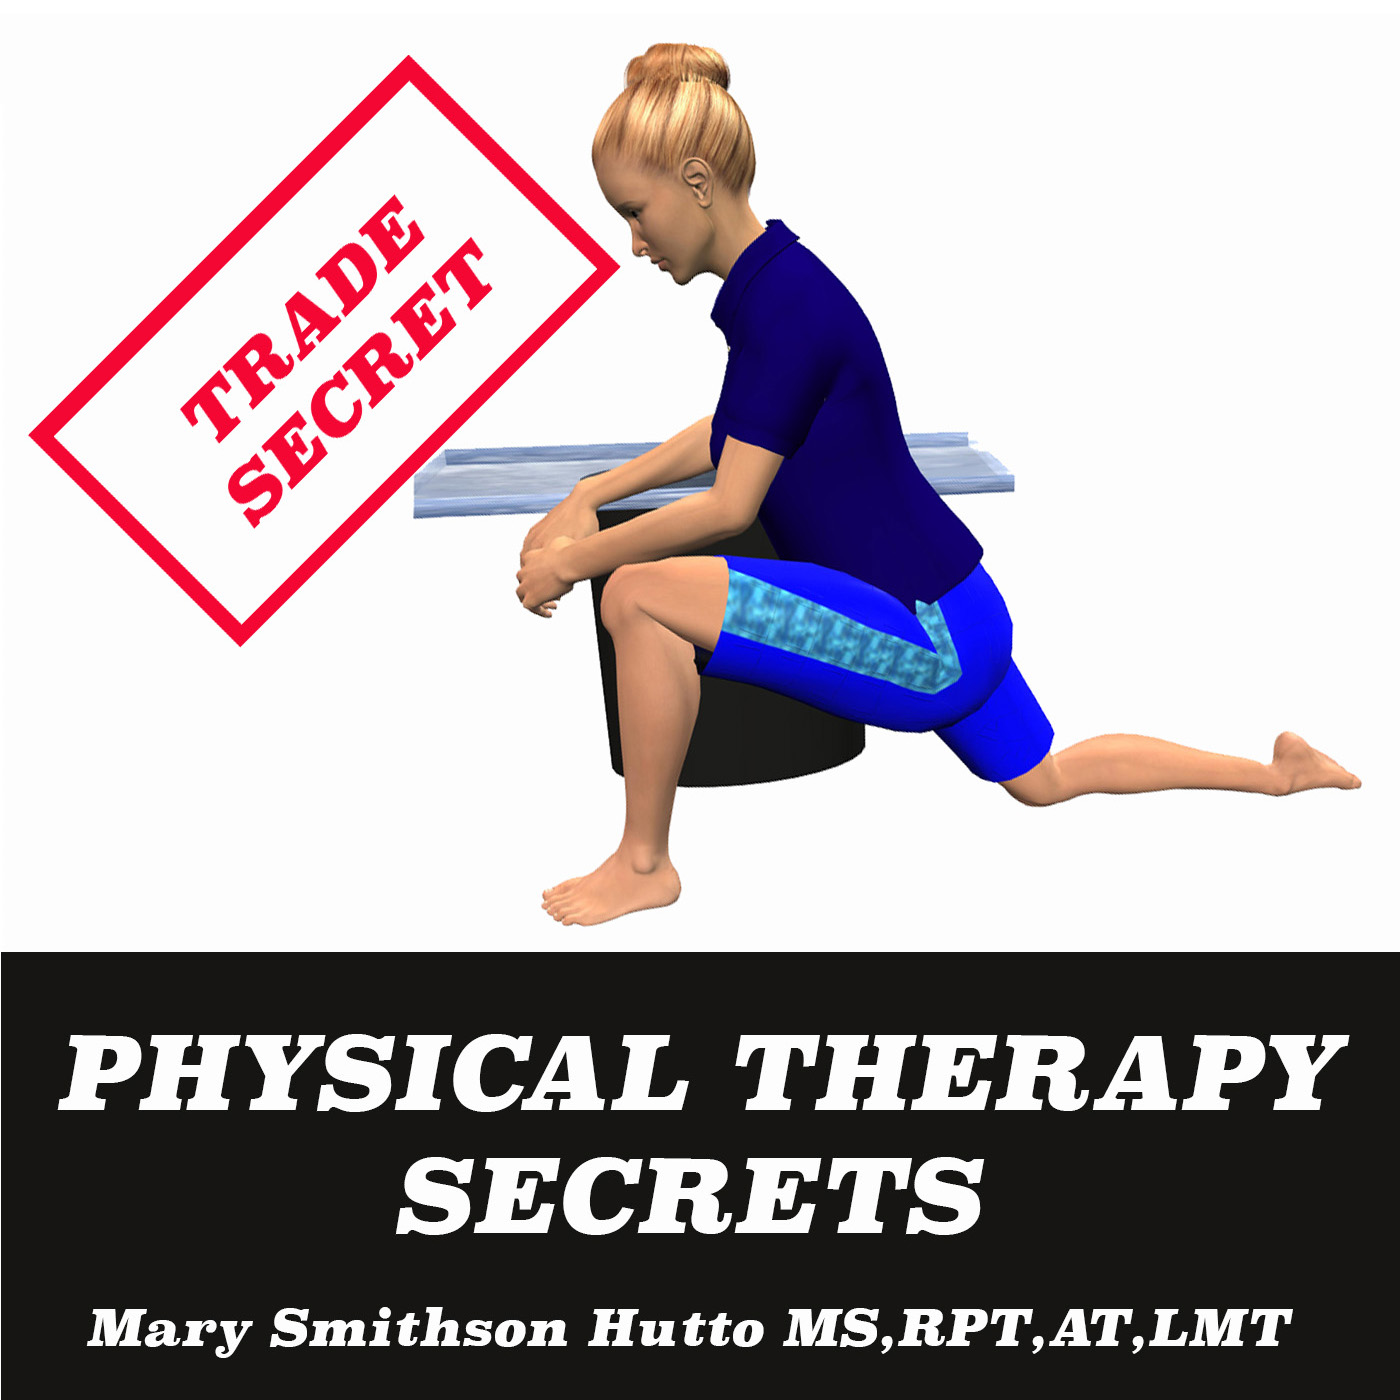 physical therapy secrets podcast-Stretch away muscle pain using safe stretches that target the tight muscles causing pain show image